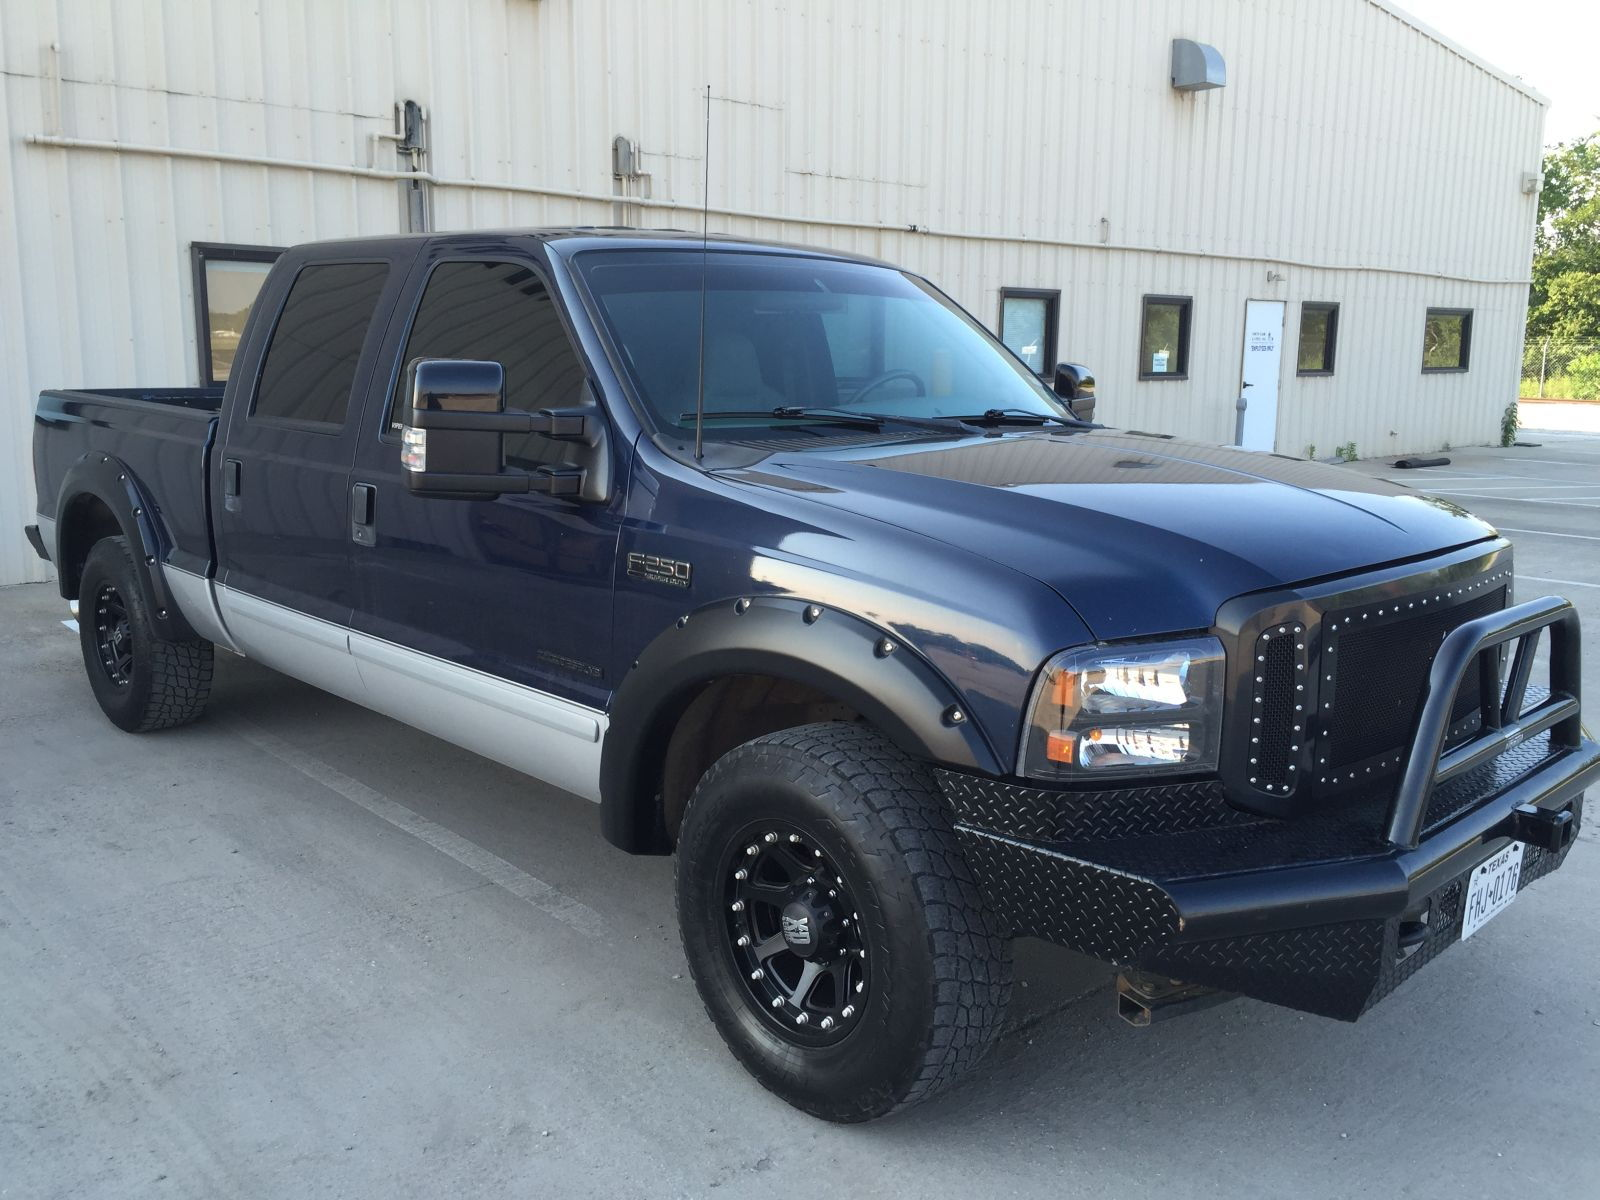 Ford Excursion Blacked Out >> My 2002 F-250 7.3L! - Ford Truck Enthusiasts Forums